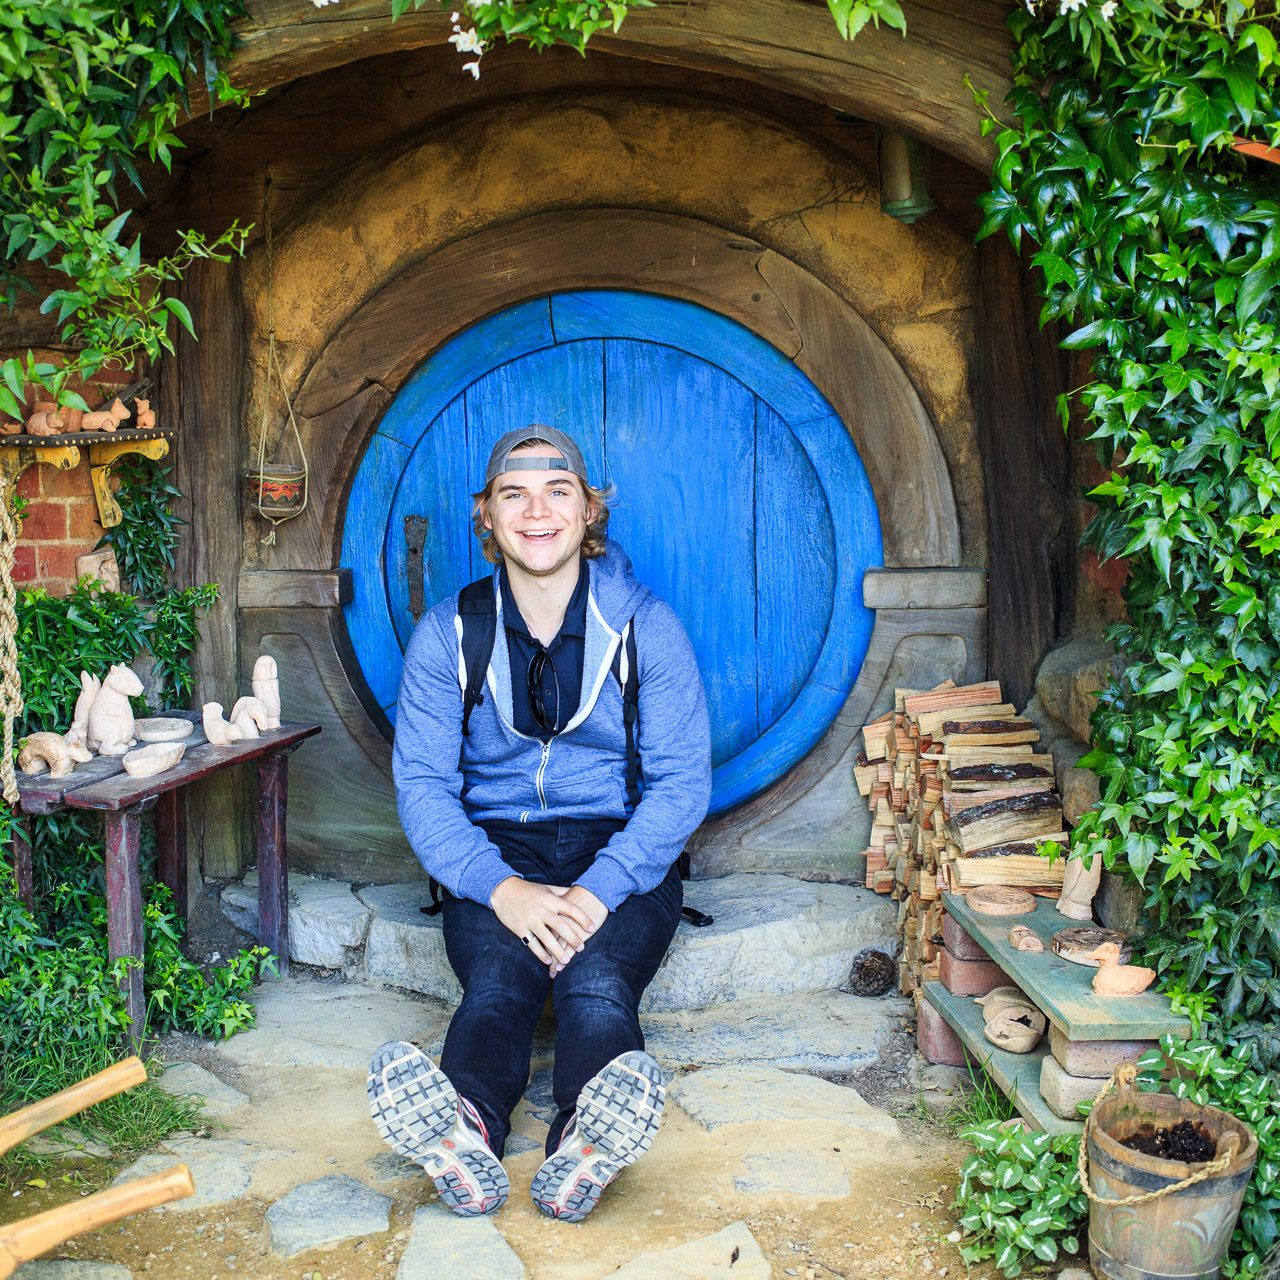 Sitting at Hobbiton, New Zealand